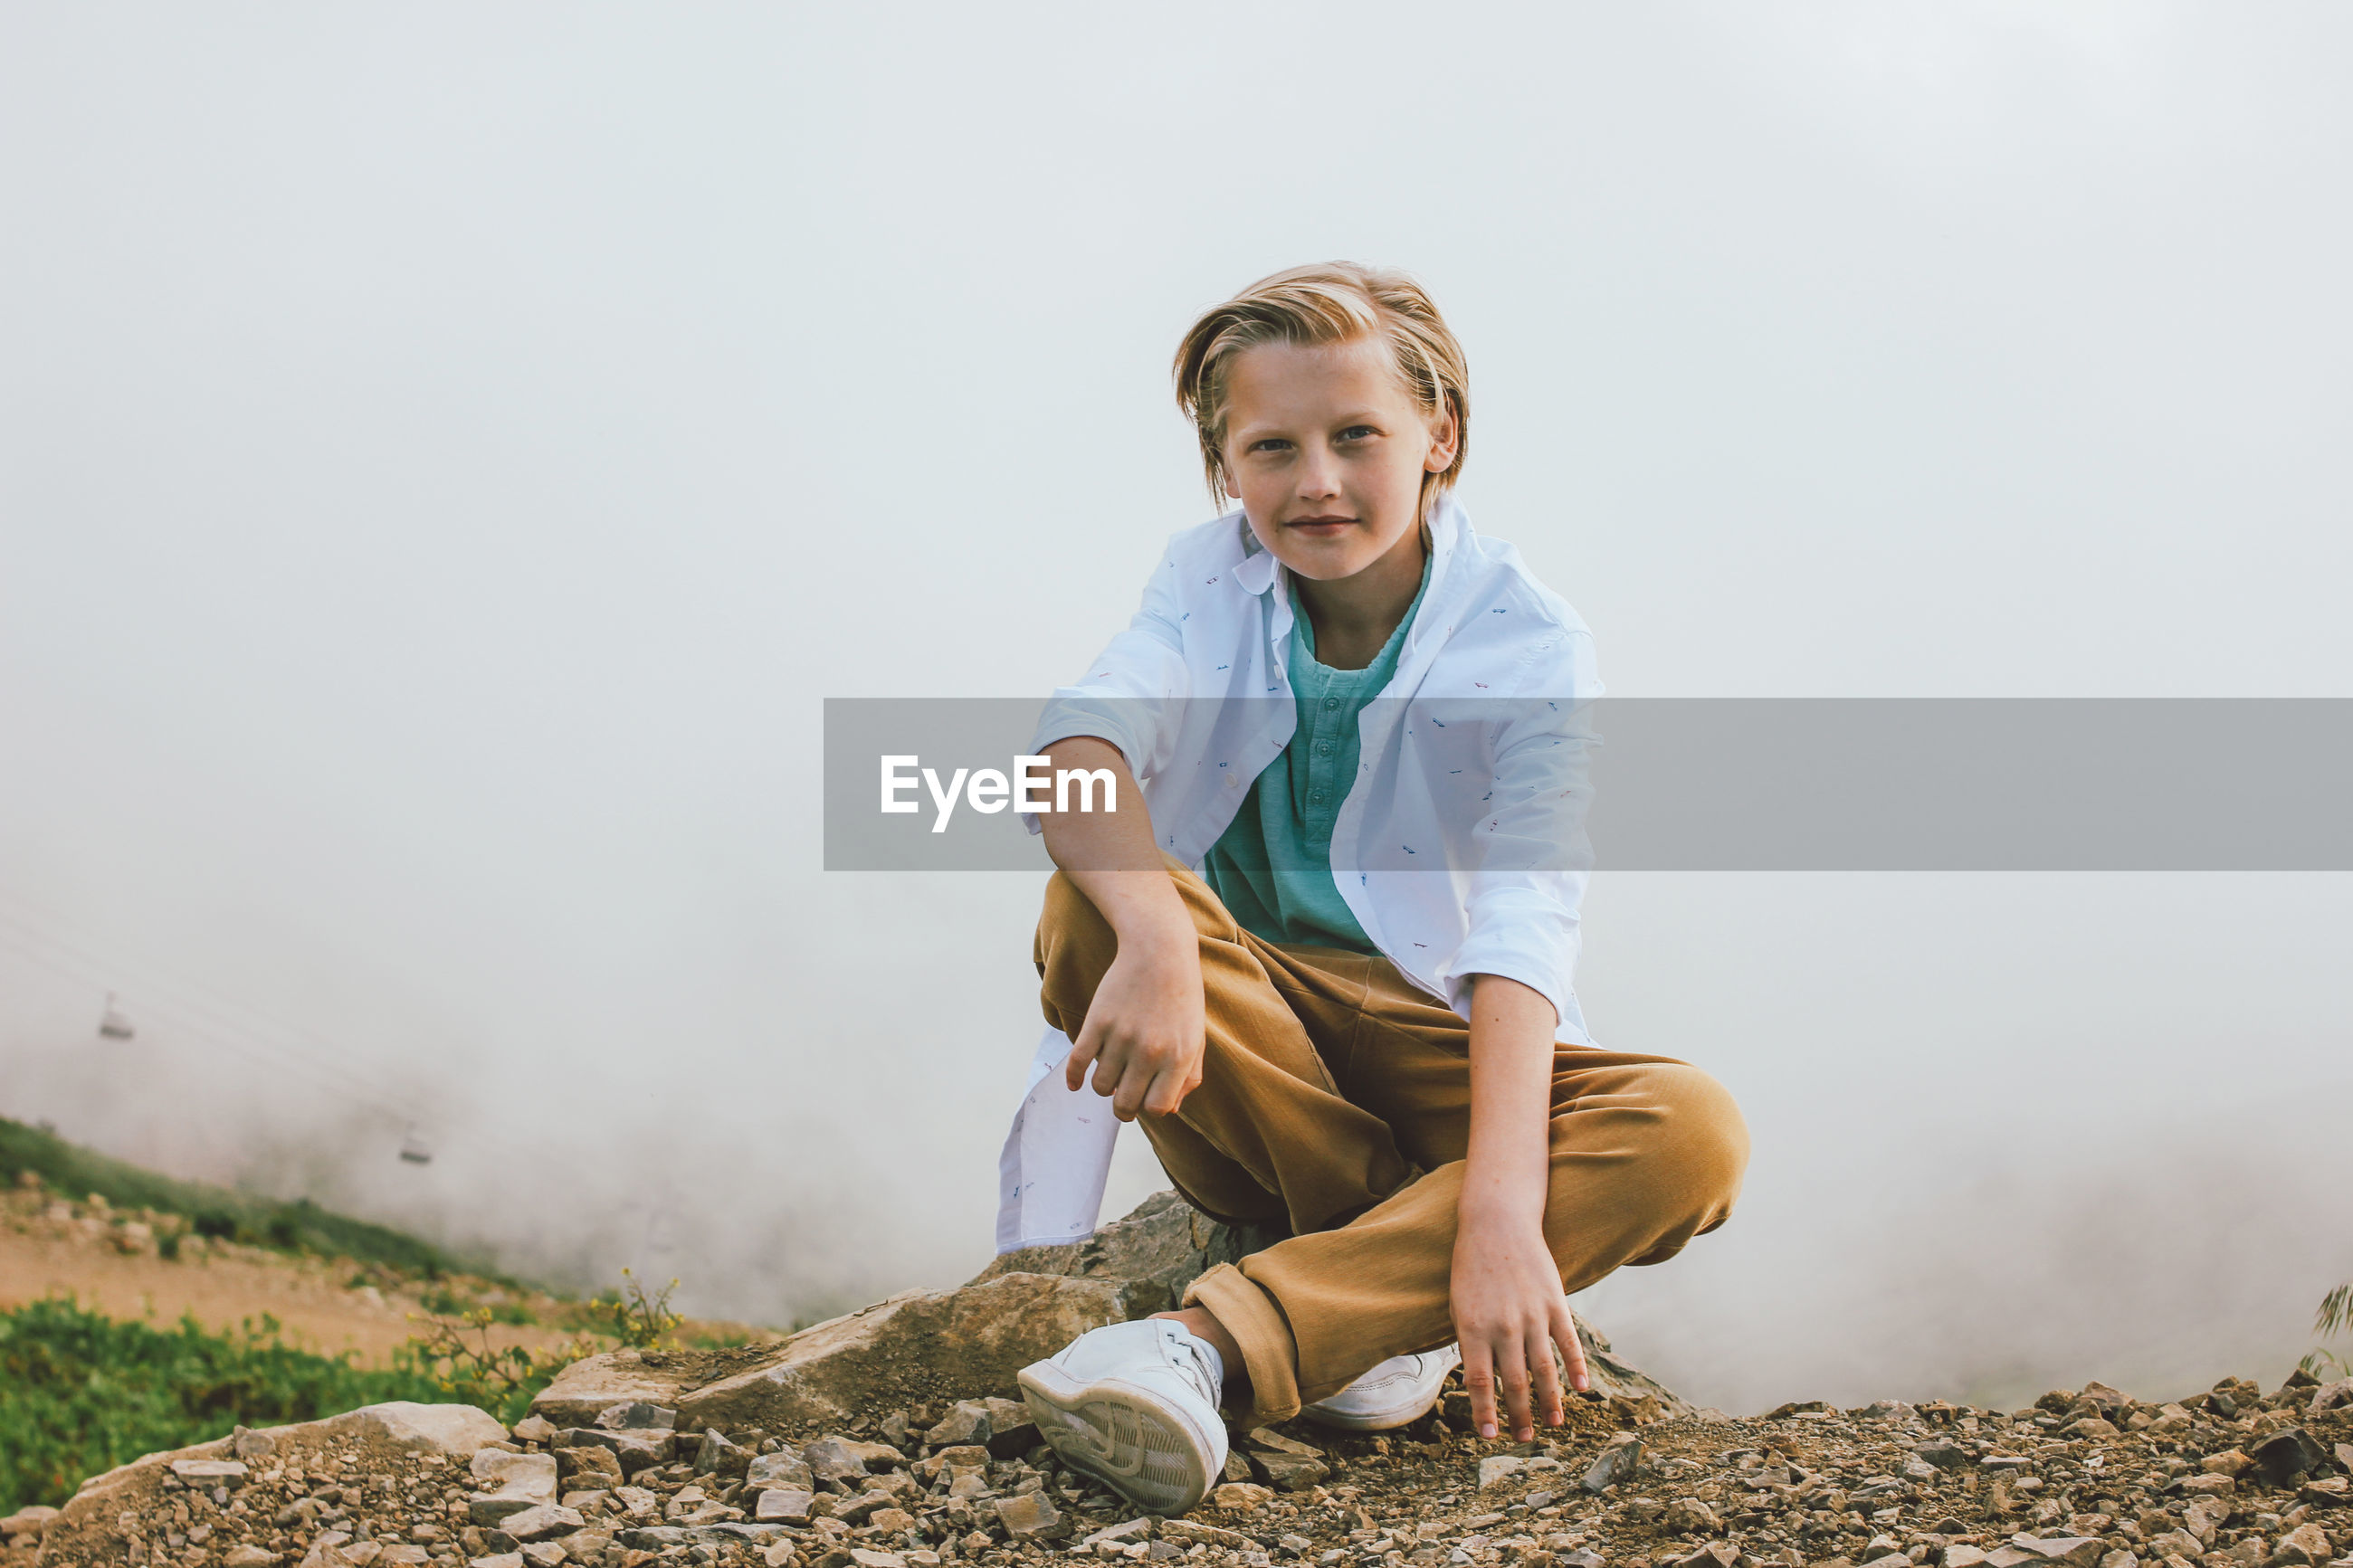 Portrait of smiling boy sitting on rock against sky